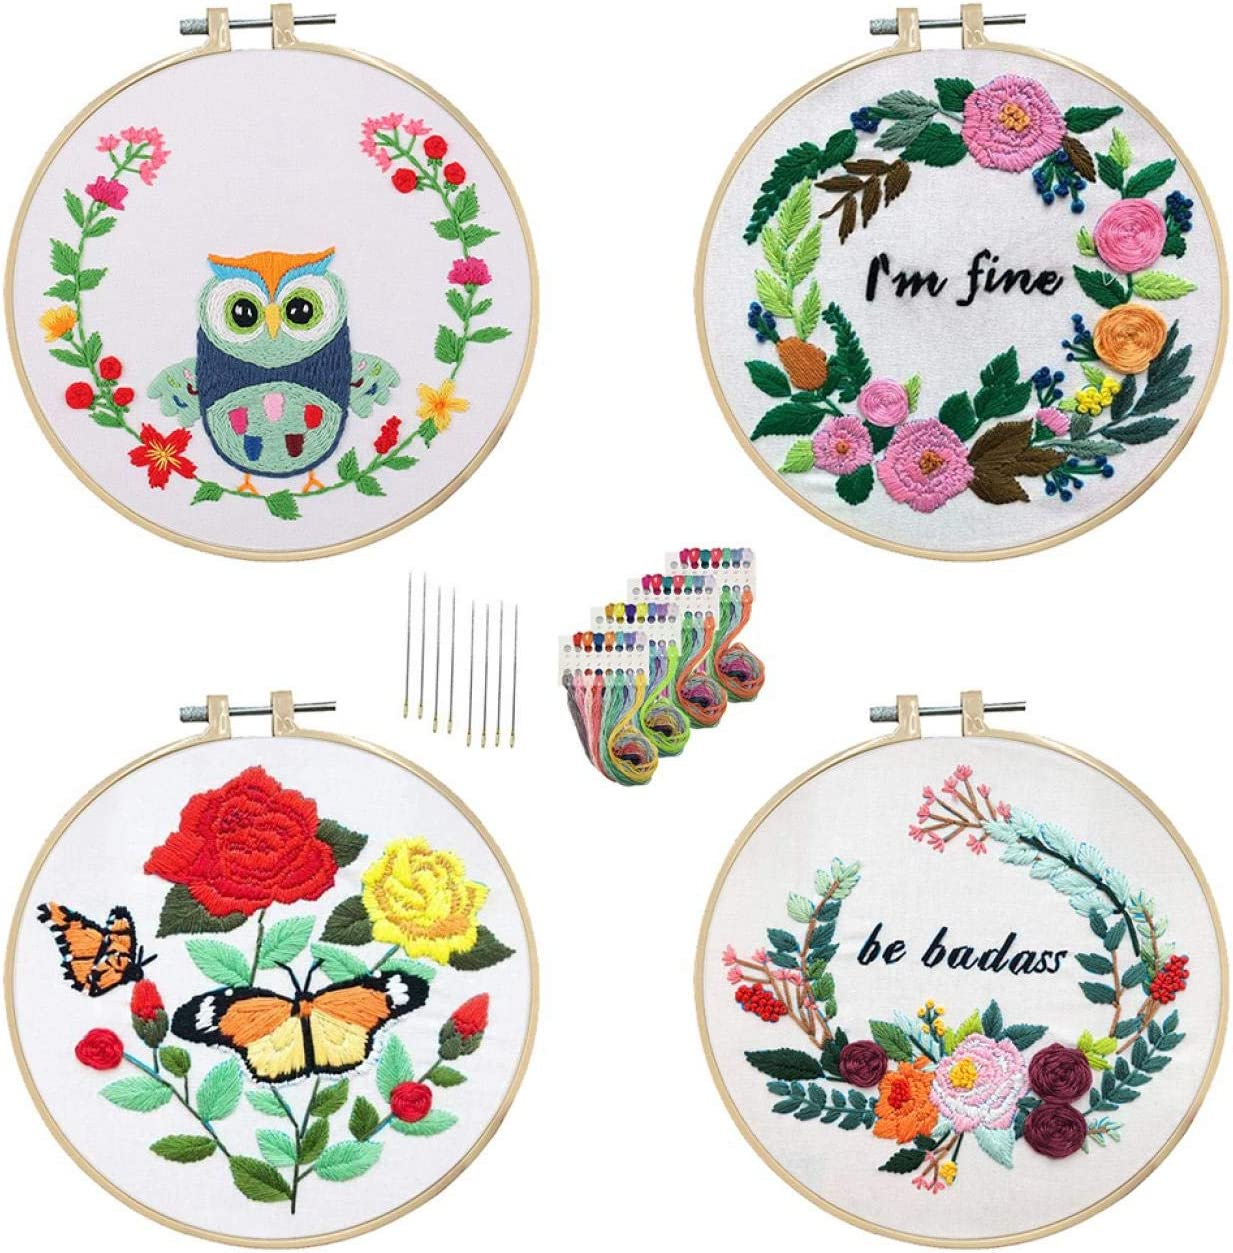 Cross Stitch Kits for Beginners Handmade Crafts Embroidery Kits for Adults Nuberlic 4 Pack Embroidery Kit with Pattern